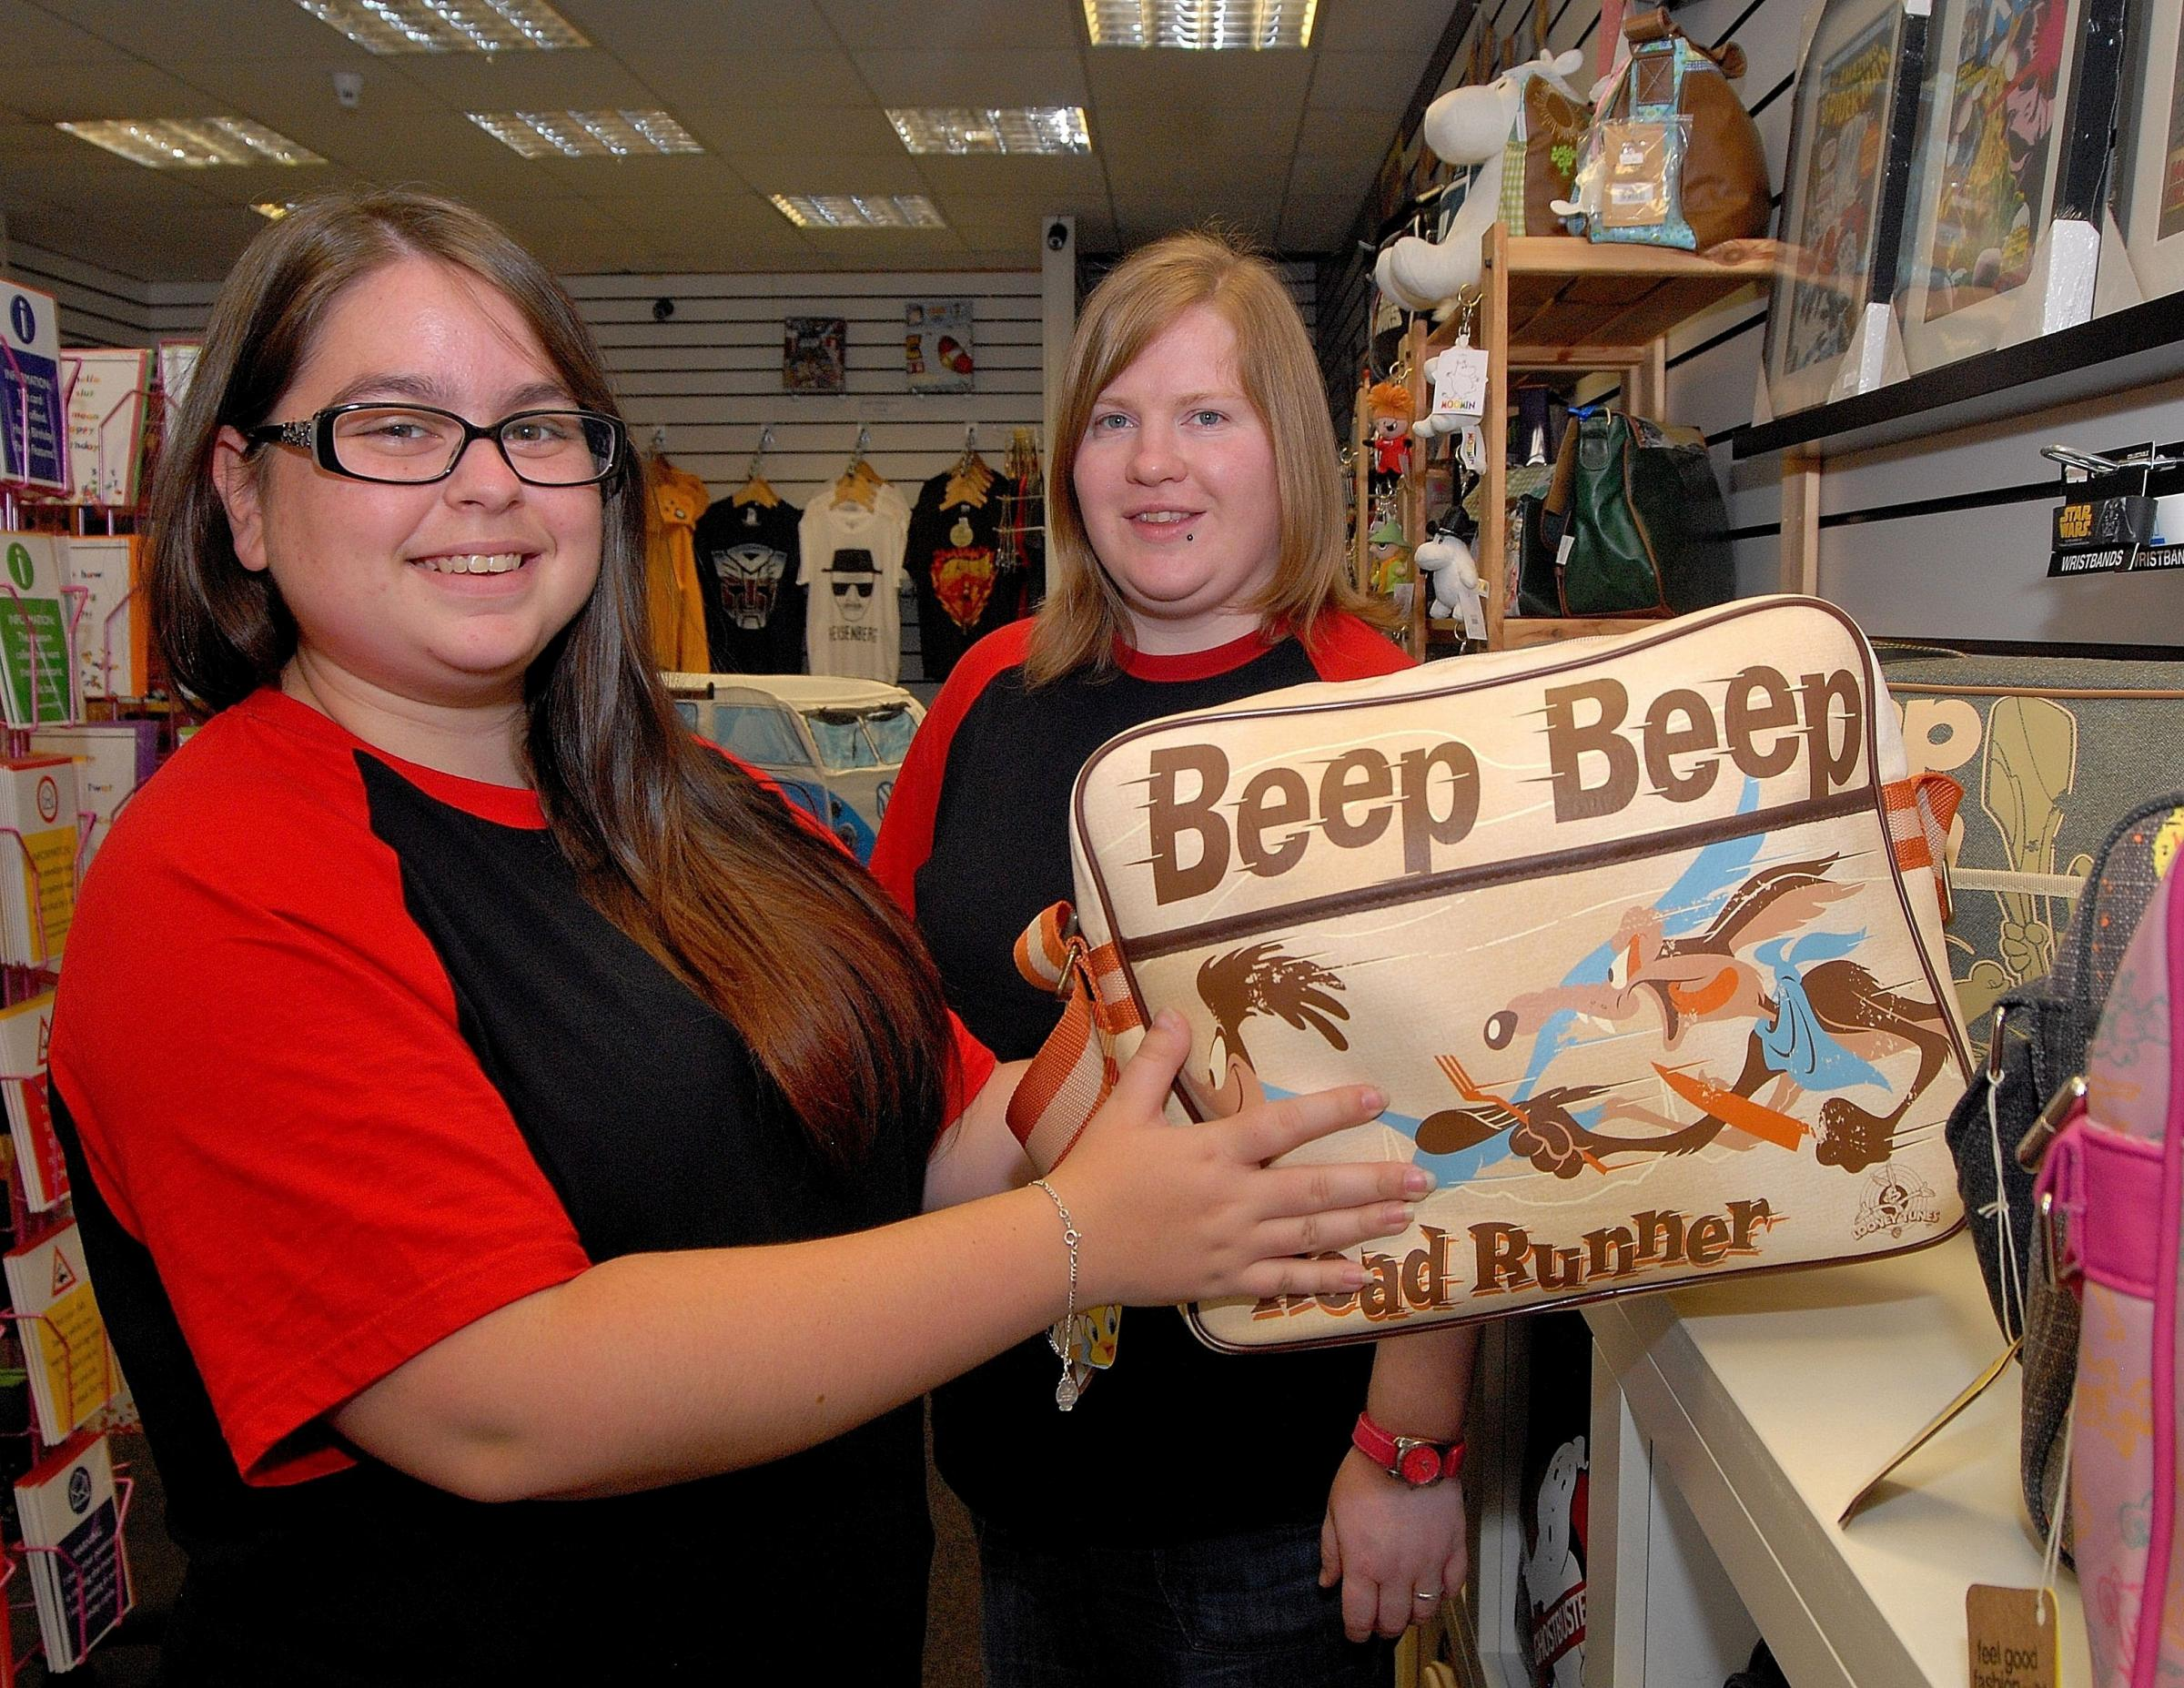 Teenager says work experience at Worcester shop helped build her confidence and says more stores should offer it